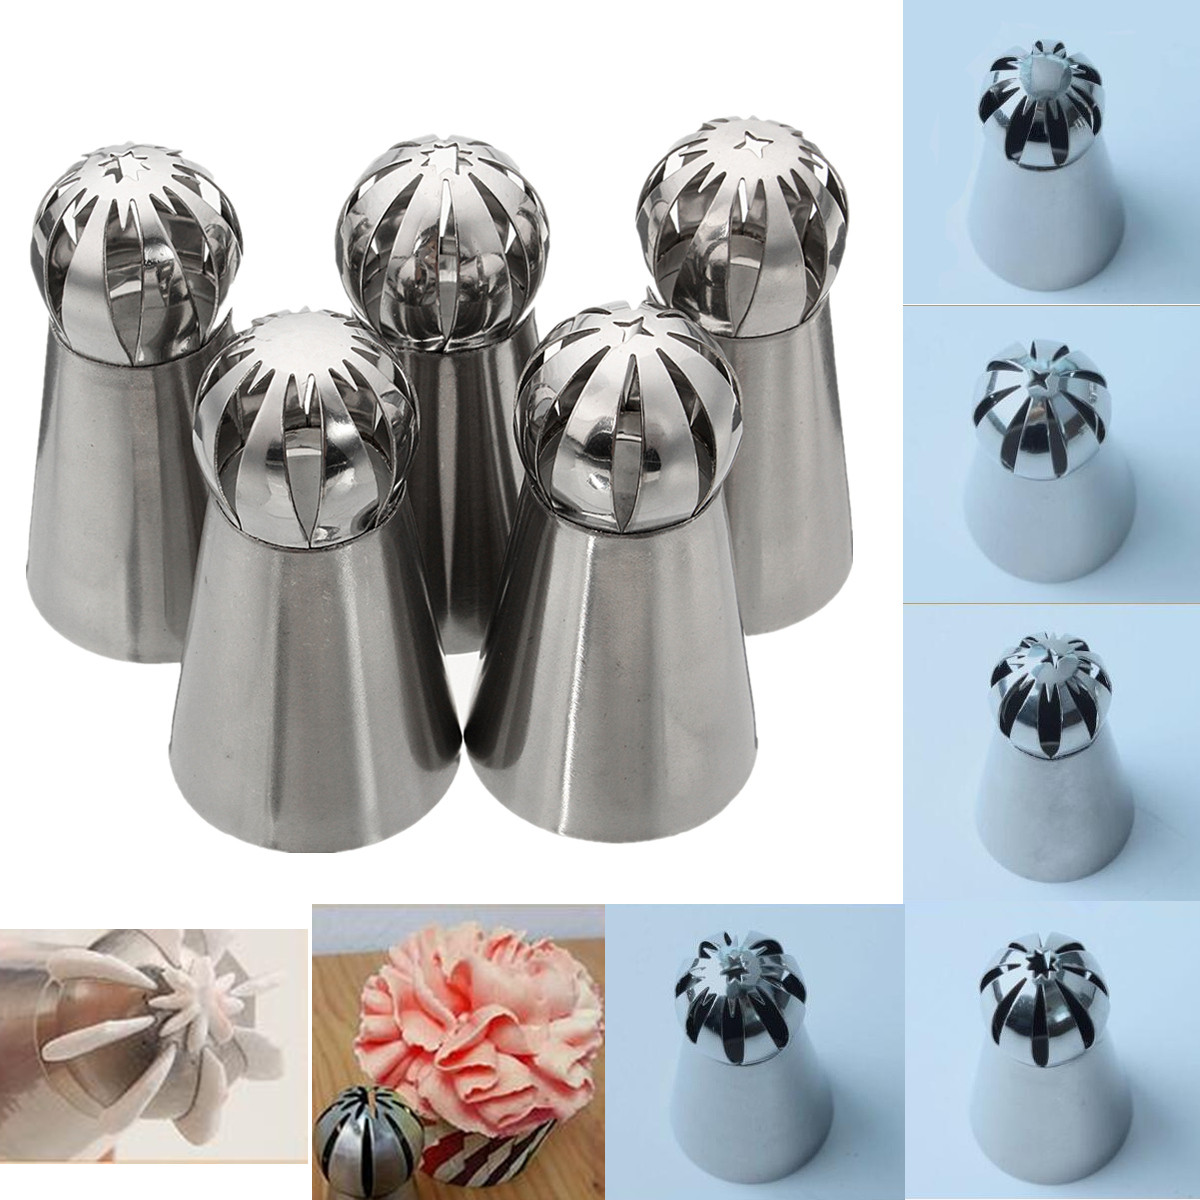 piping nozzles guide